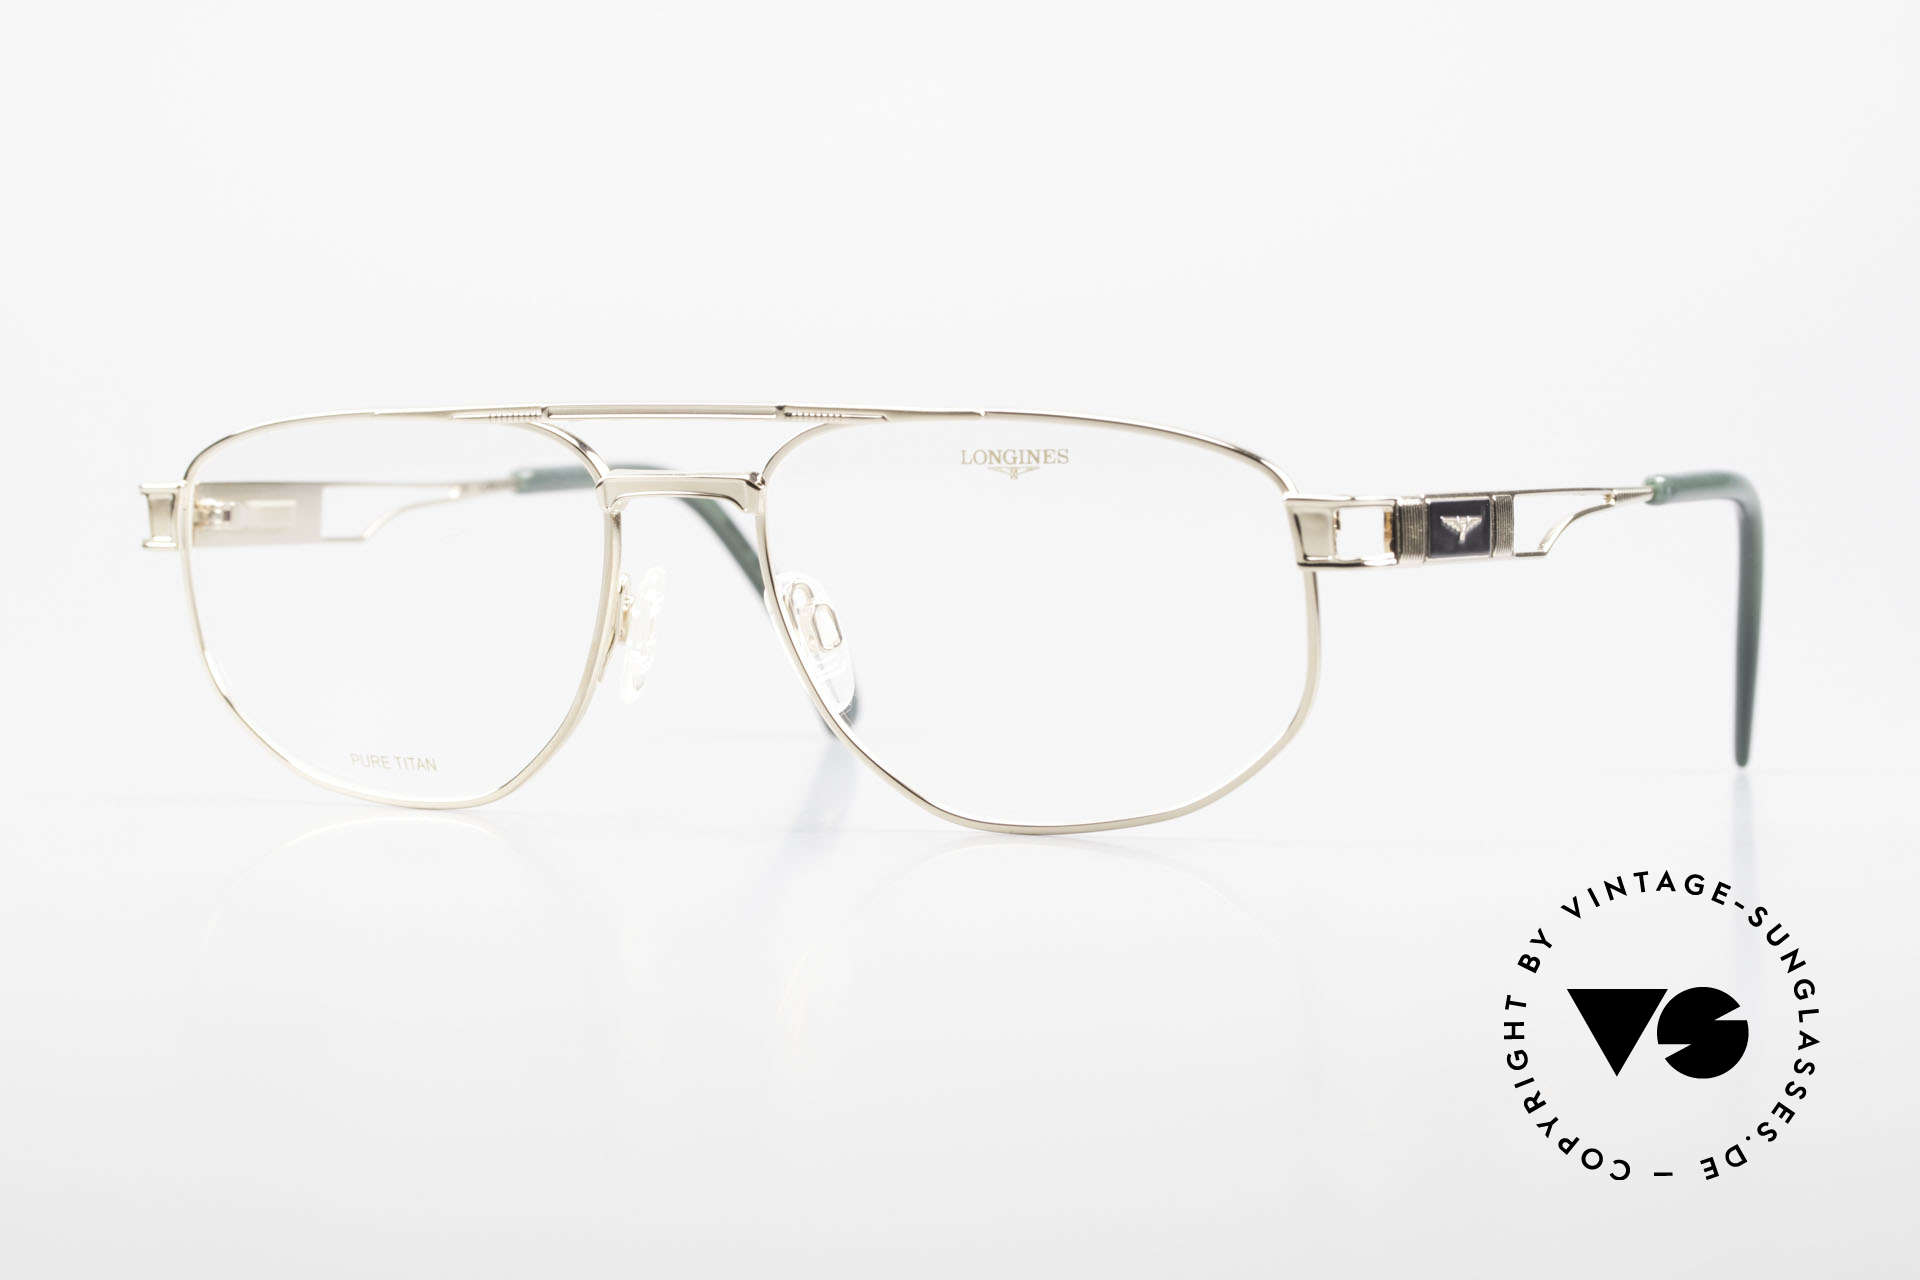 Longines 4555 90's Men's Glasses Pure Titan, Longines Men's Eyeglasses, mod. 4555, size 58/18, 140, Made for Men